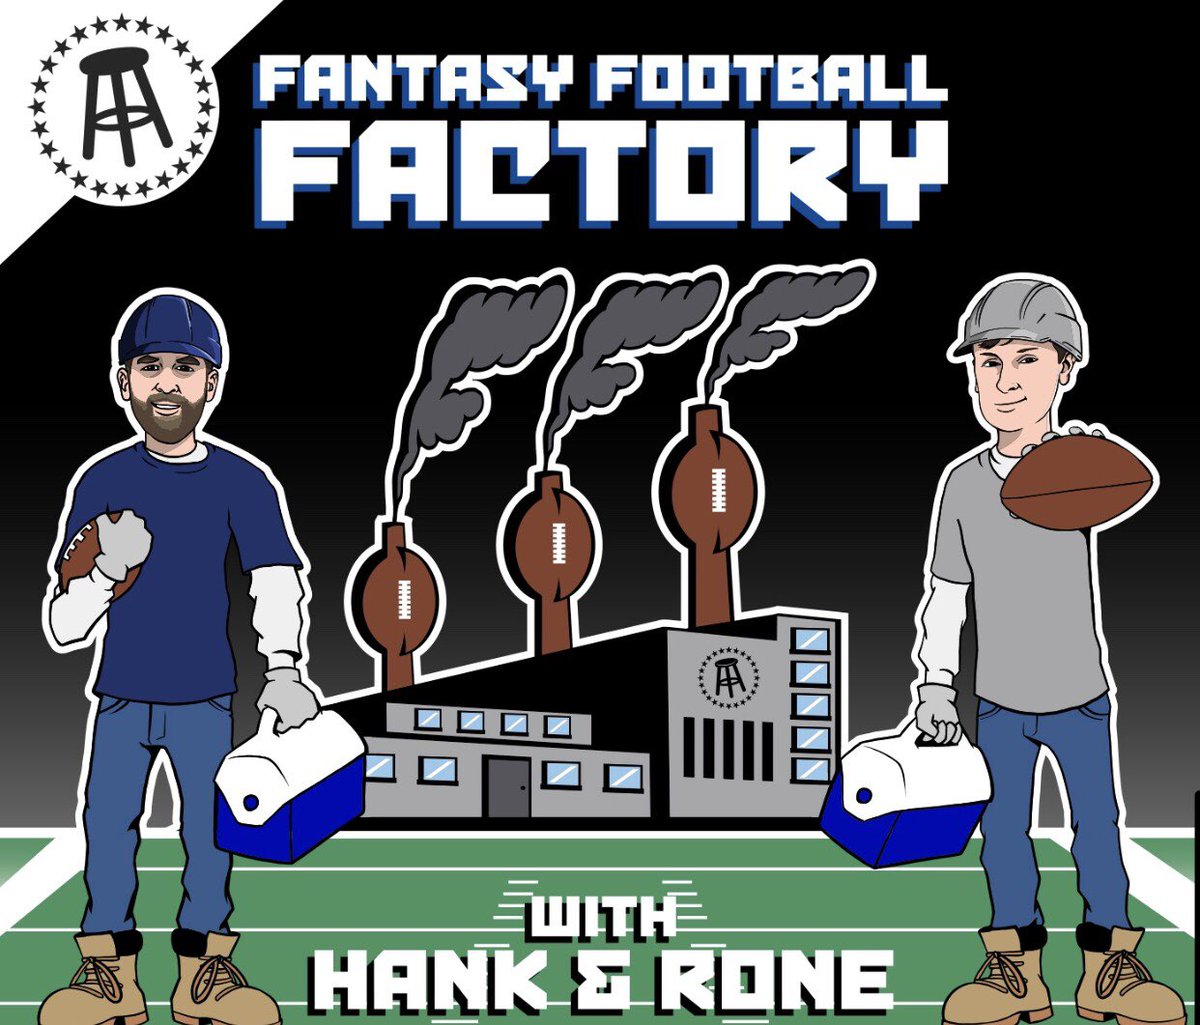 FFF Episode 1 is live!  We discuss the 2019 BSSFFL as well as give thoughts on who might be sleepers or busts this season, before a great interview with @BalesFootball.  Loaded first episode. Let's go.   https:// podcasts.apple.com/us/podcast/fan tasy-football-factory/id1477054314#episodeGuid=29b955d2-8cad-f8f4-99c2-d11cbb424a87  … <br>http://pic.twitter.com/1kD0Hd3lGp